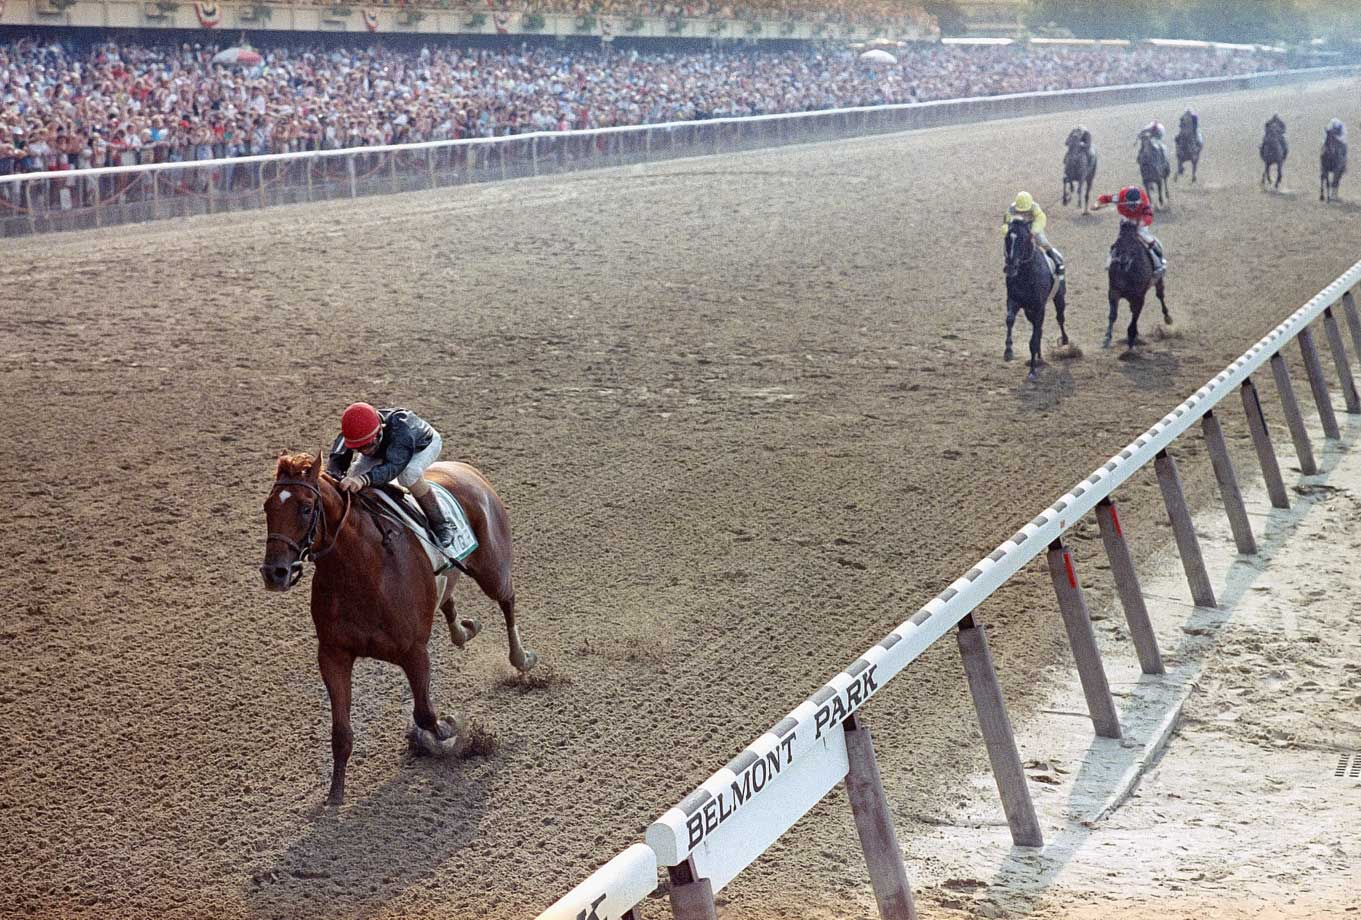 Sunday Silence faced off with rival Easy Goer in each leg of the 1989 Triple Crown. Running as the second-favorite, Sunday Silence first upset Easy Goer by 2 1/2 lengths at the Derby. The two colts then hooked up in a famous duel down the stretch at the Preakness, where Sunday Silence won by a nose. But Easy Goer (left) would have the last laugh, winning the Belmont by eight lengths ahead of Sunday Silence (yellow).